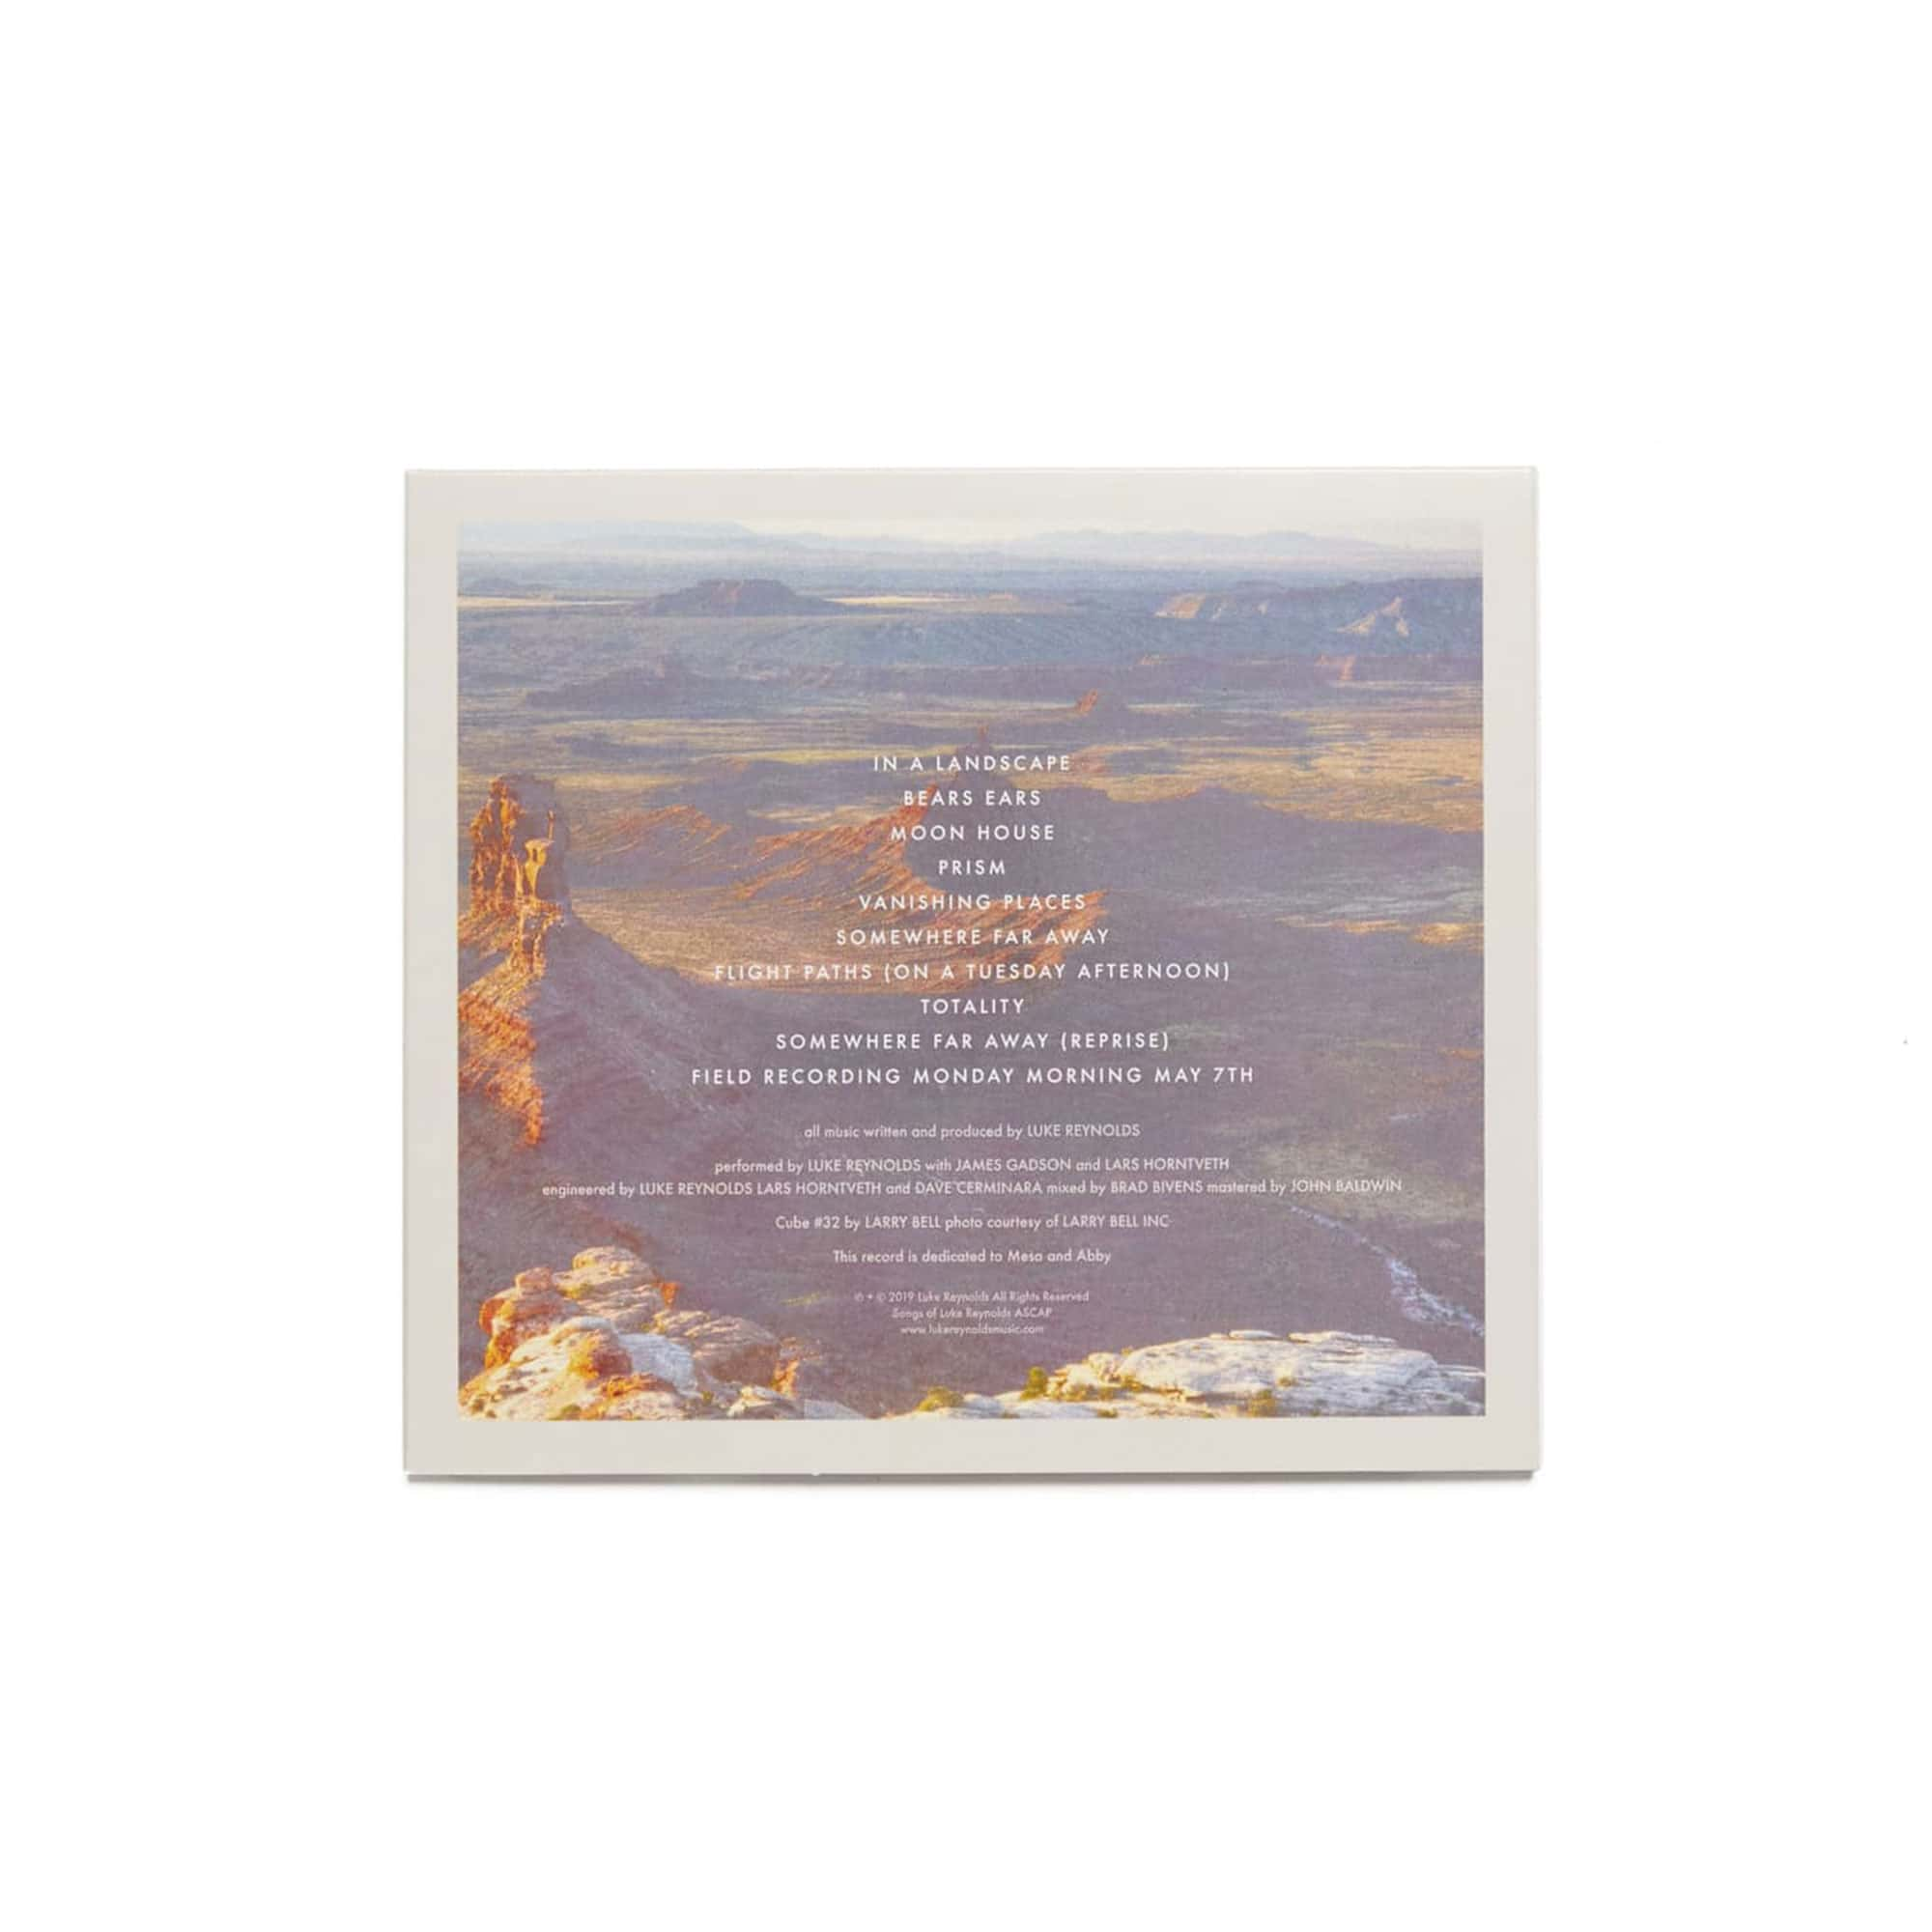 Luke Reynolds 'Vanishing Places Vol 1: Bears Ears' CD + MP3 Download - SIGNED